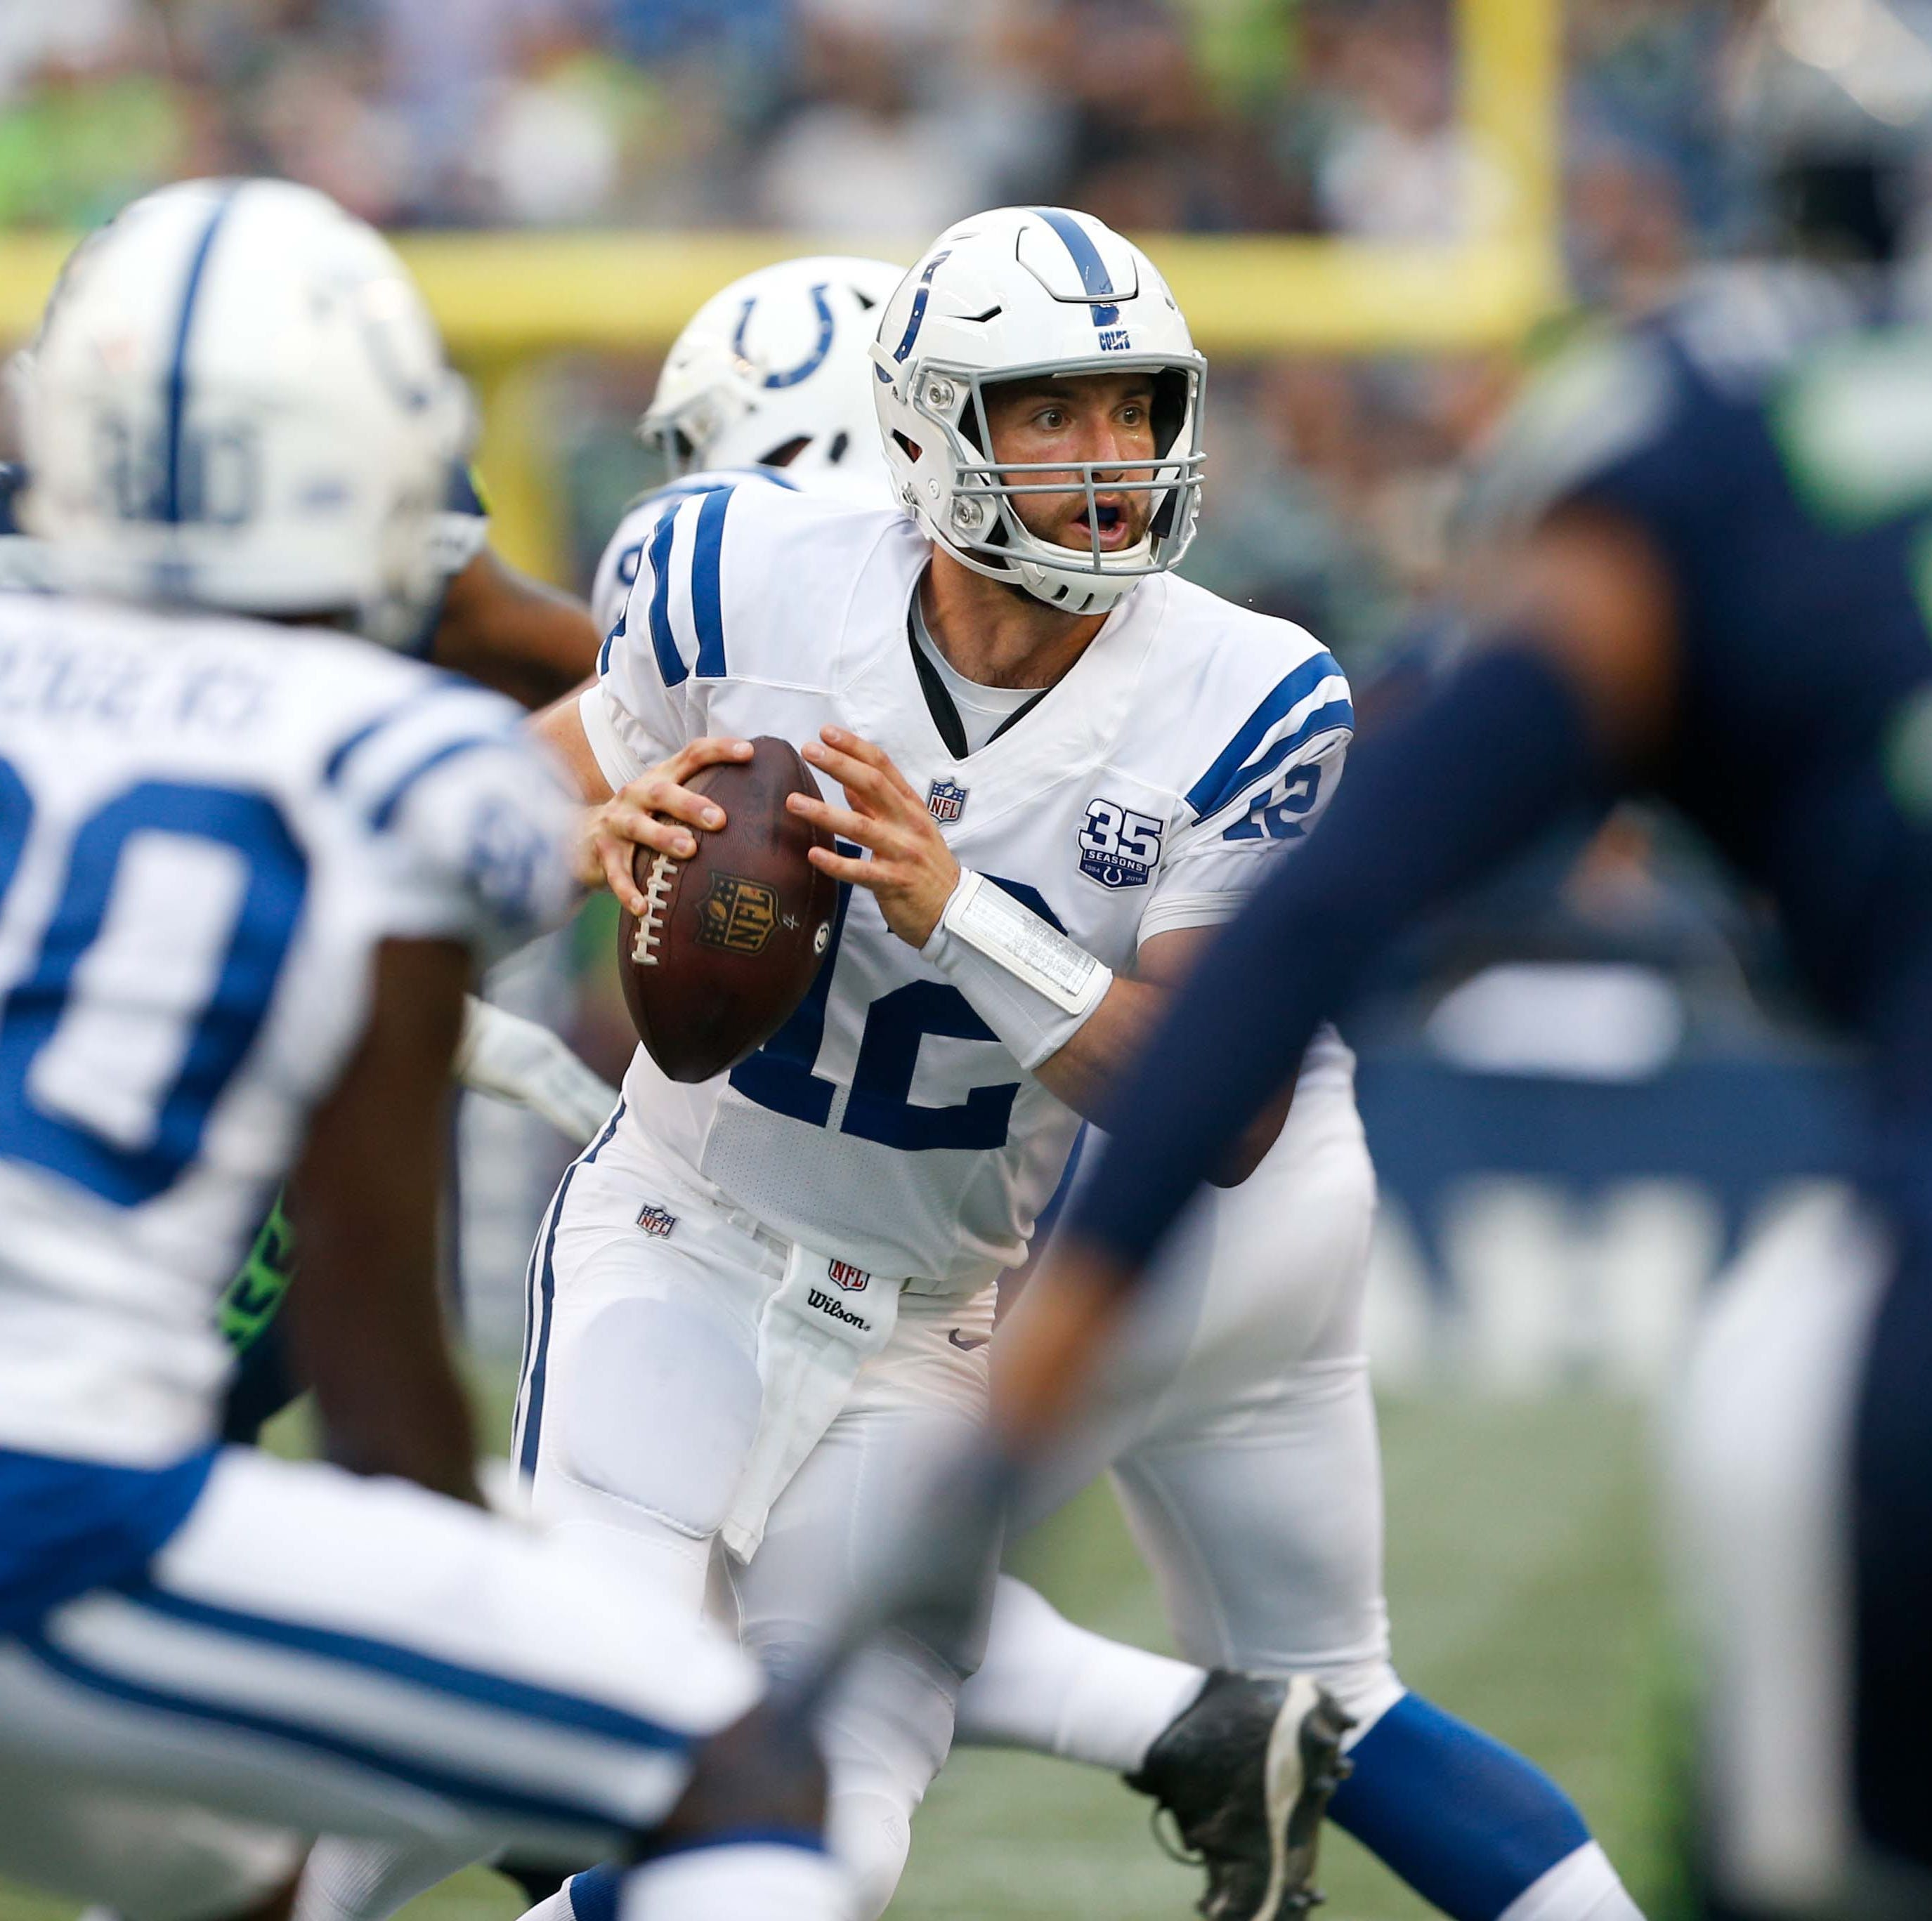 Colts QB Andrew Luck says he feels 'sharp' in preseason debut against the Seahawks